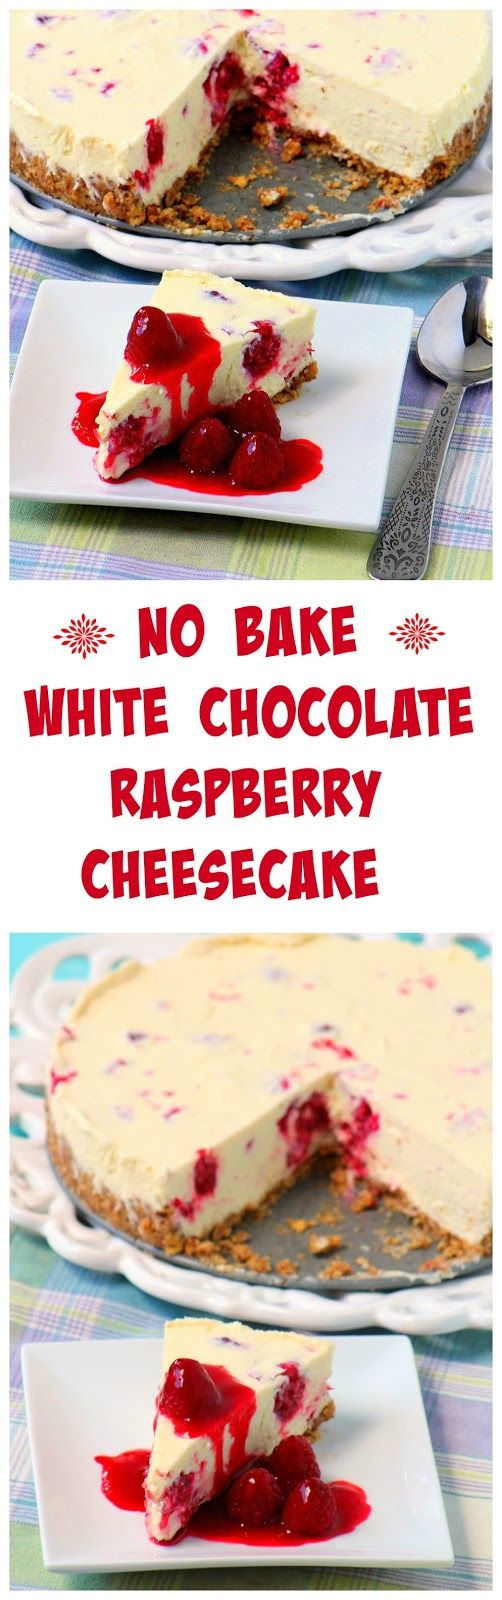 This luscious NO BAKE White Chocolate Raspberry Cheesecake is the ultimate dessert. Fresh and sweet-tangy raspberry coulis perfectly complements the rich and creamy cheesecake. | manilaspoon.com